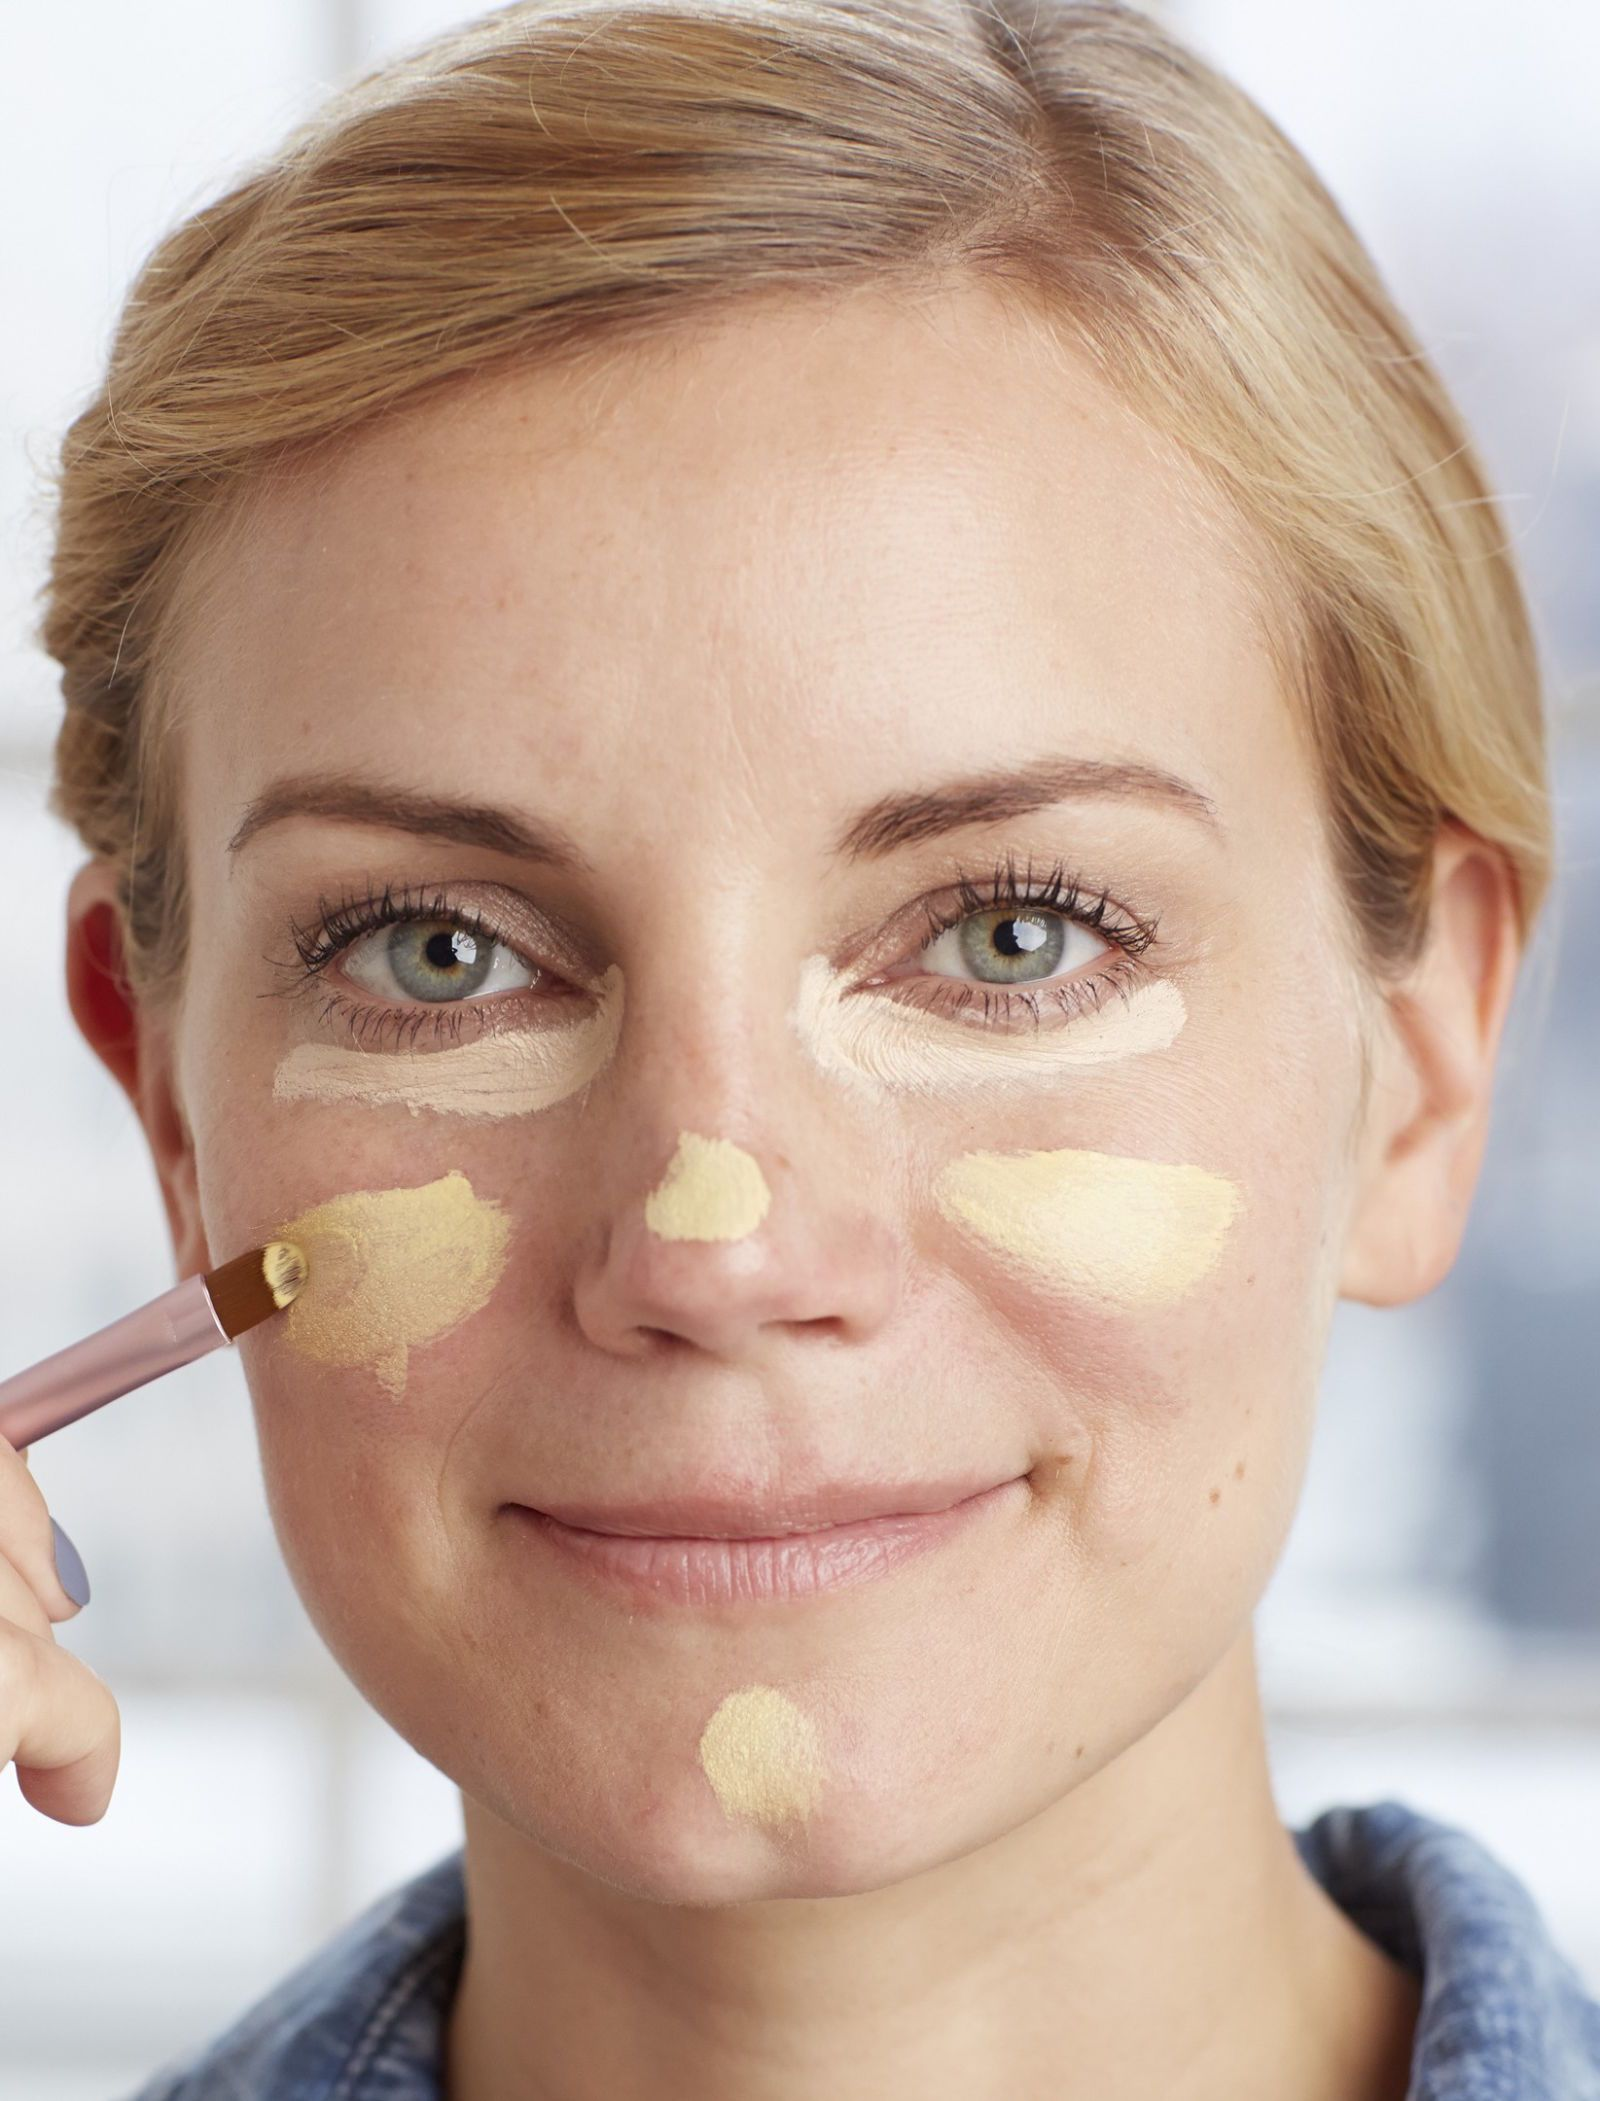 4 Easy Hacks to Fix Your Red, Blotchy Skin Red blotchy